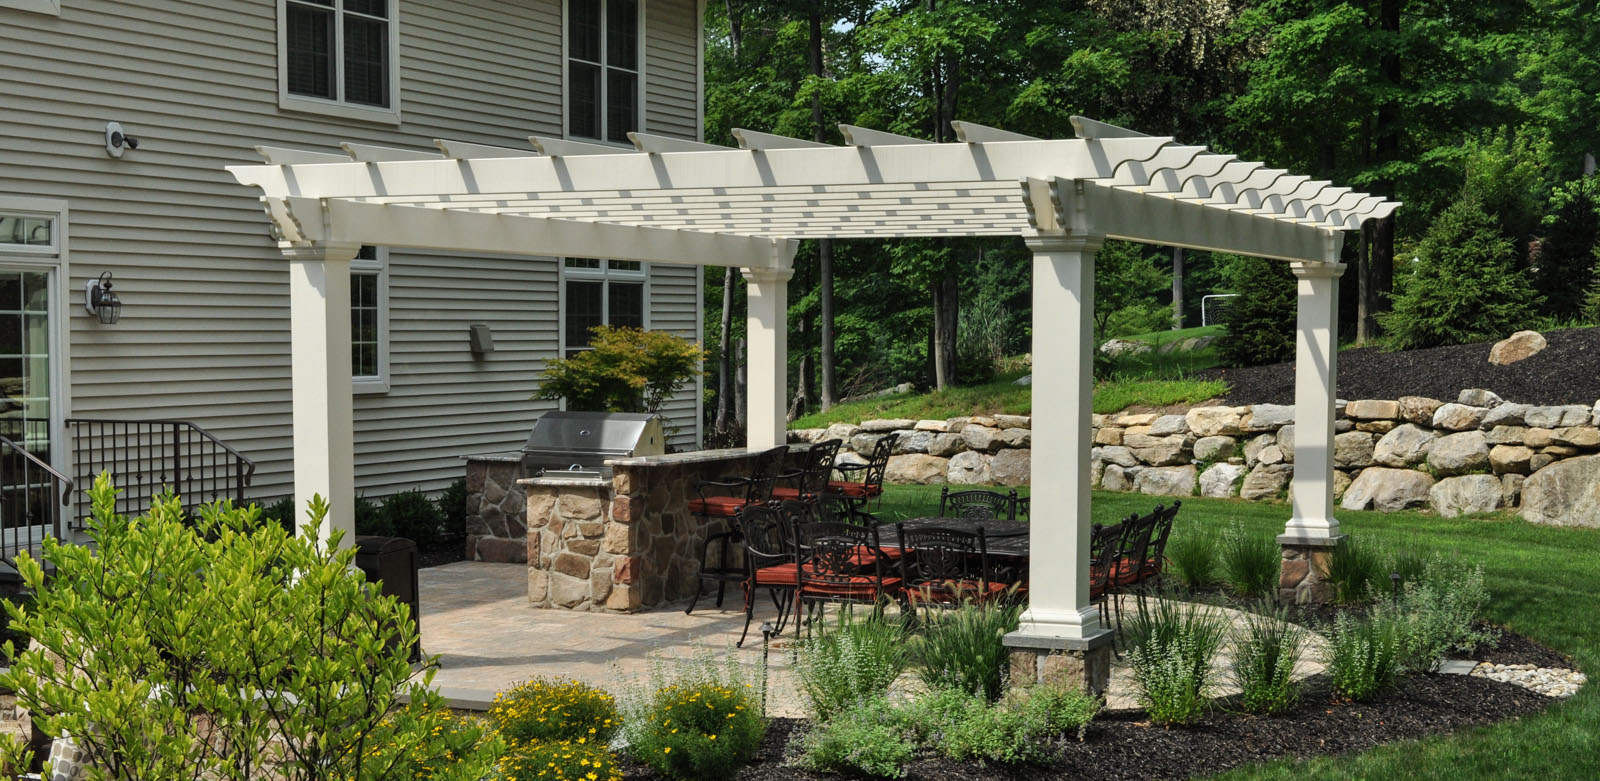 outdoor kitchen designs with pergolas. Outdoor Kitchen With Granite Countertop Designs Pergolas  Talentneeds Com